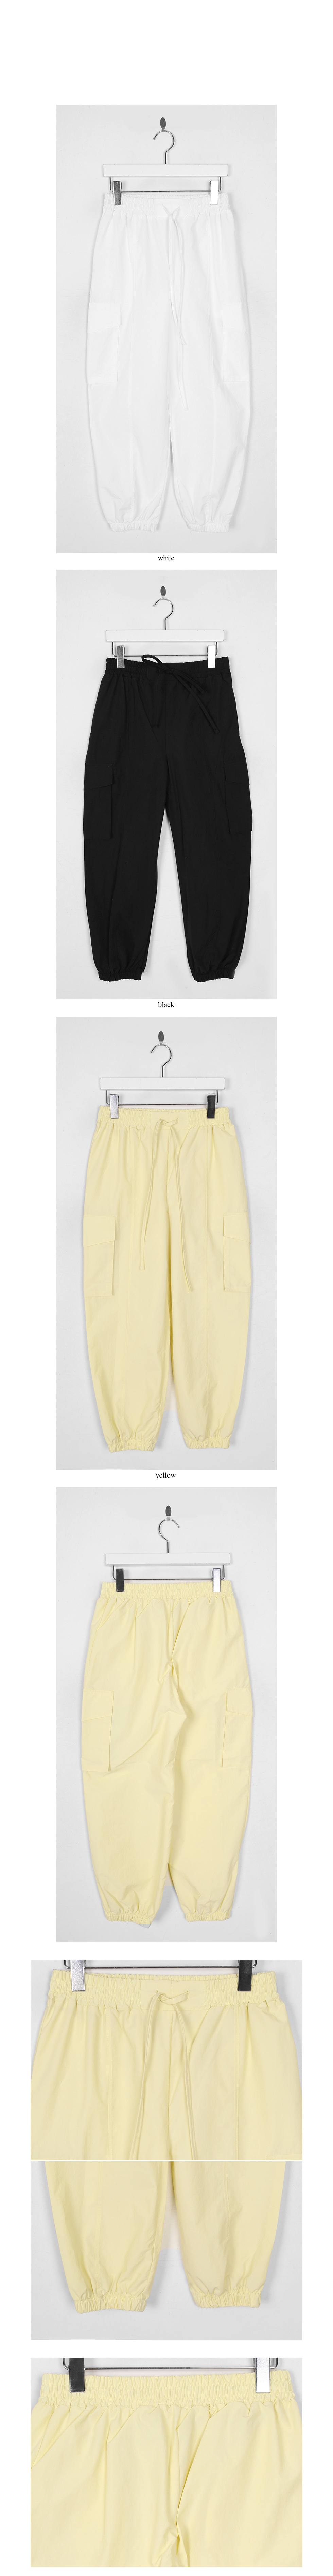 snack jogger pants